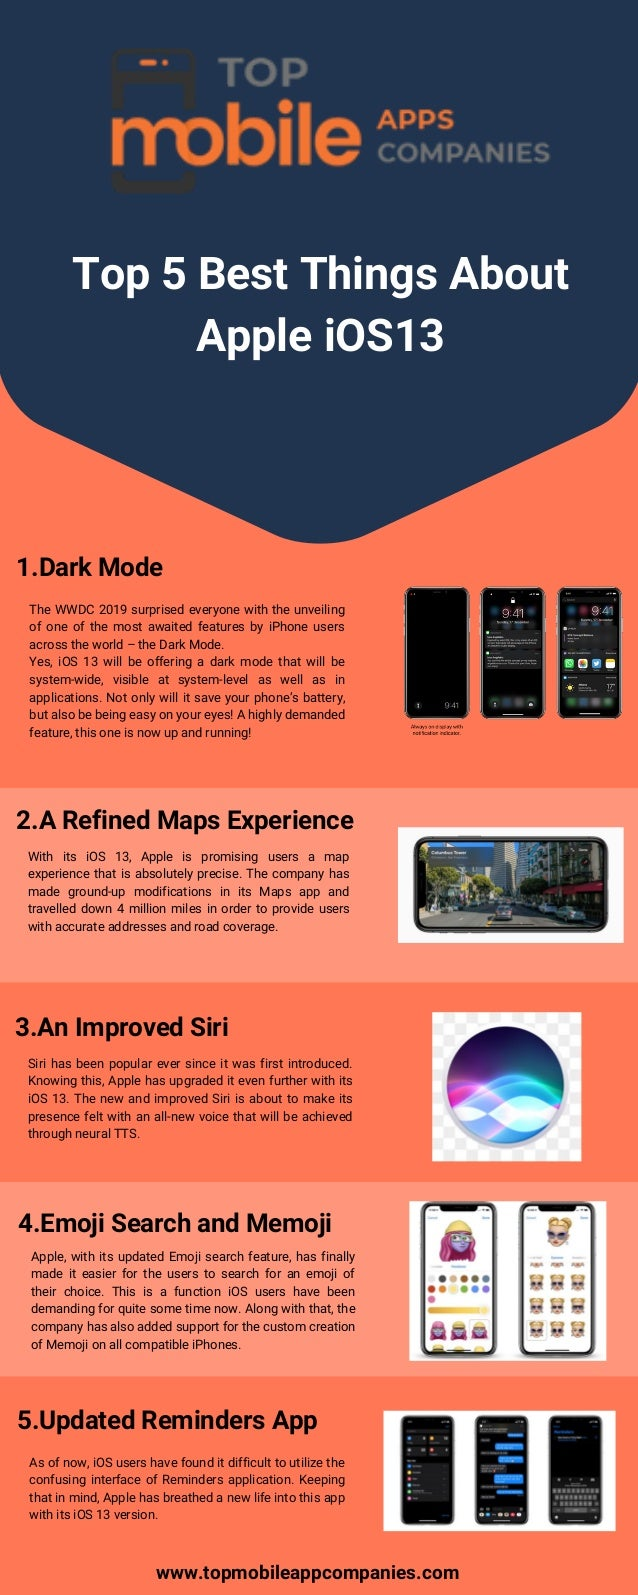 Top 5 best things about apple ios13 Top mobile app companies